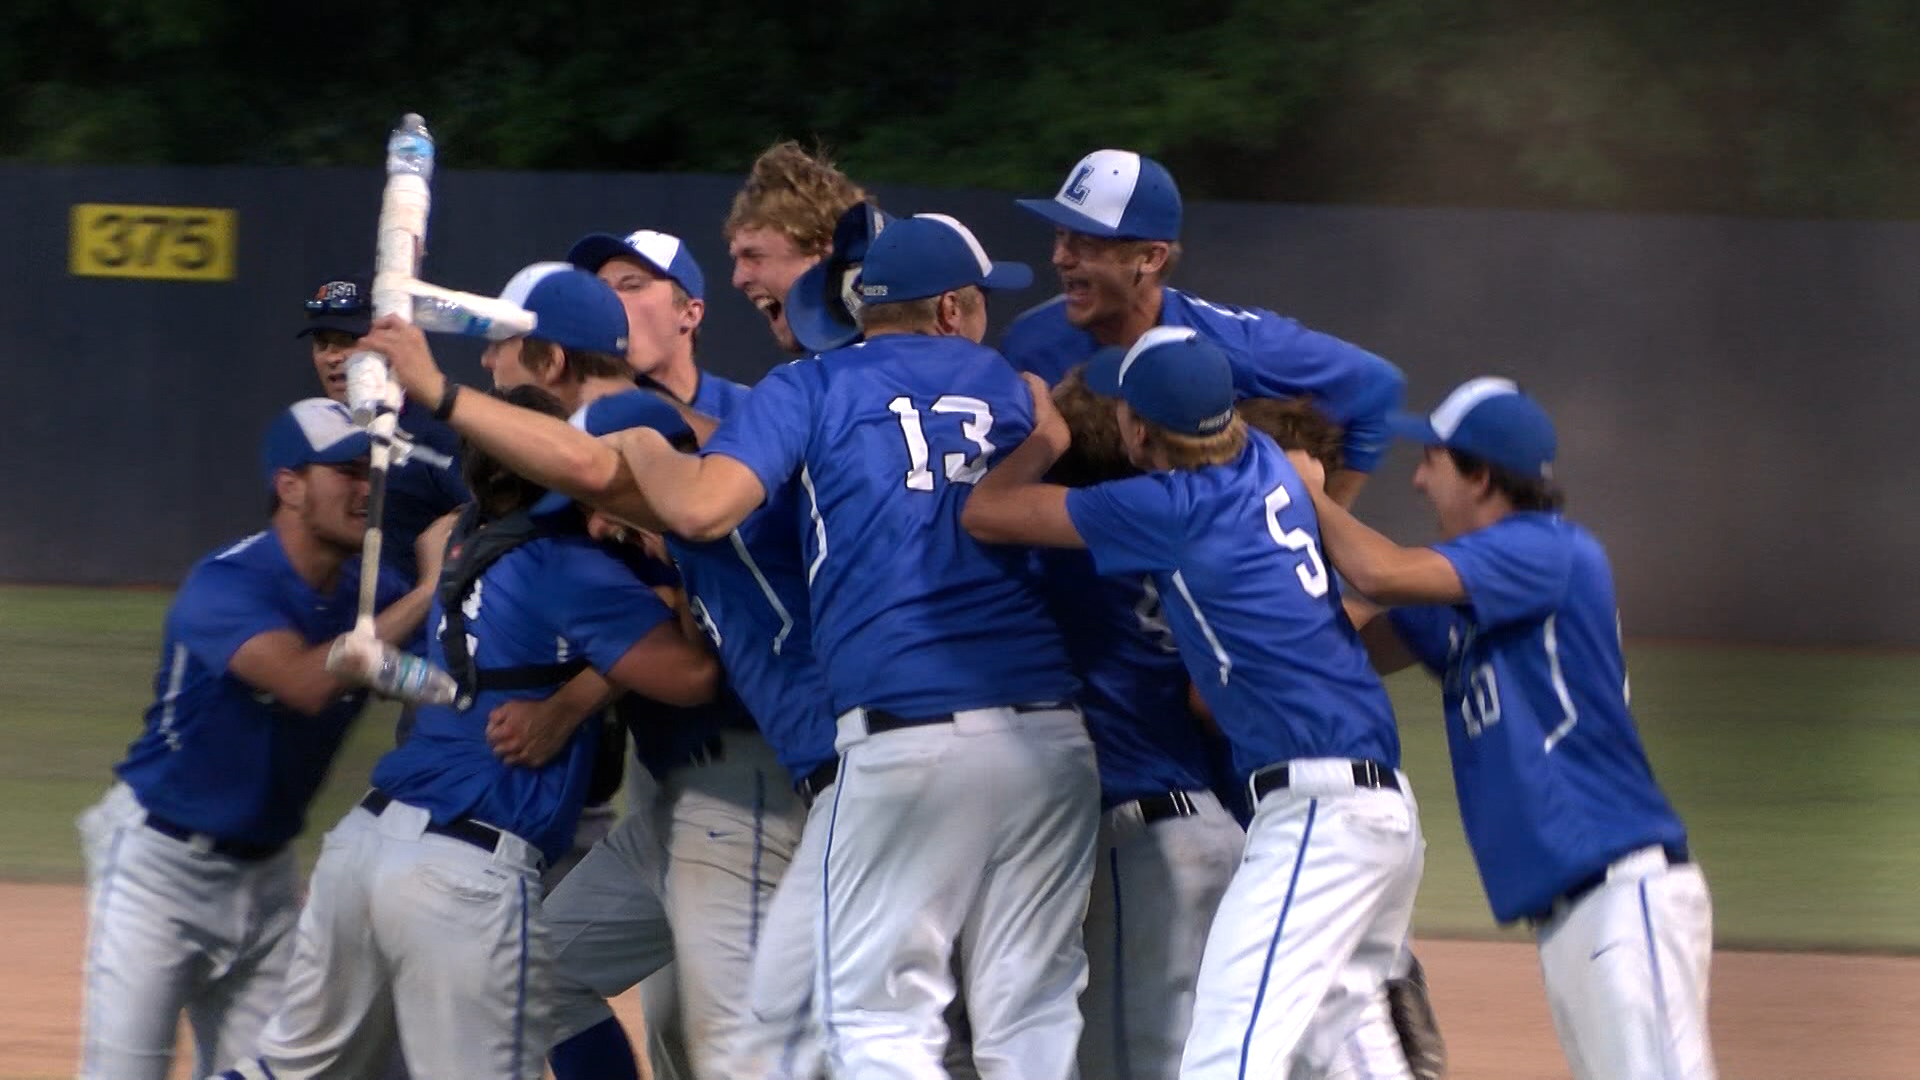 Limestone Baseball super-sectional dogpile